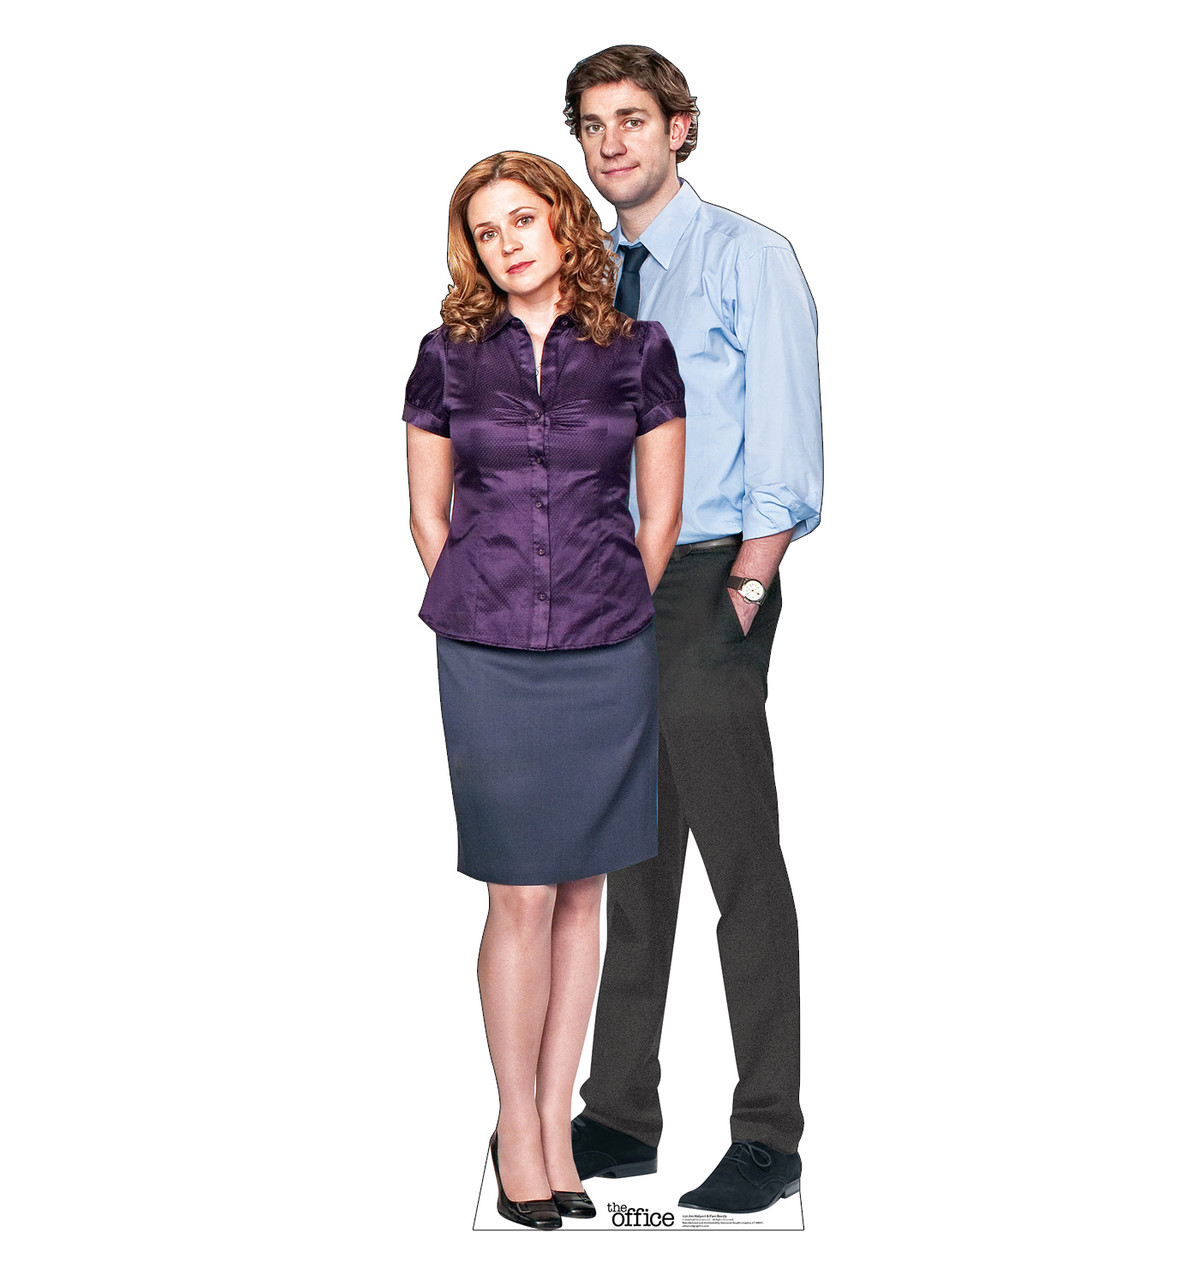 Life-size cardboard standee of Jim Halpert & Pam Beesly from the Office TV show.